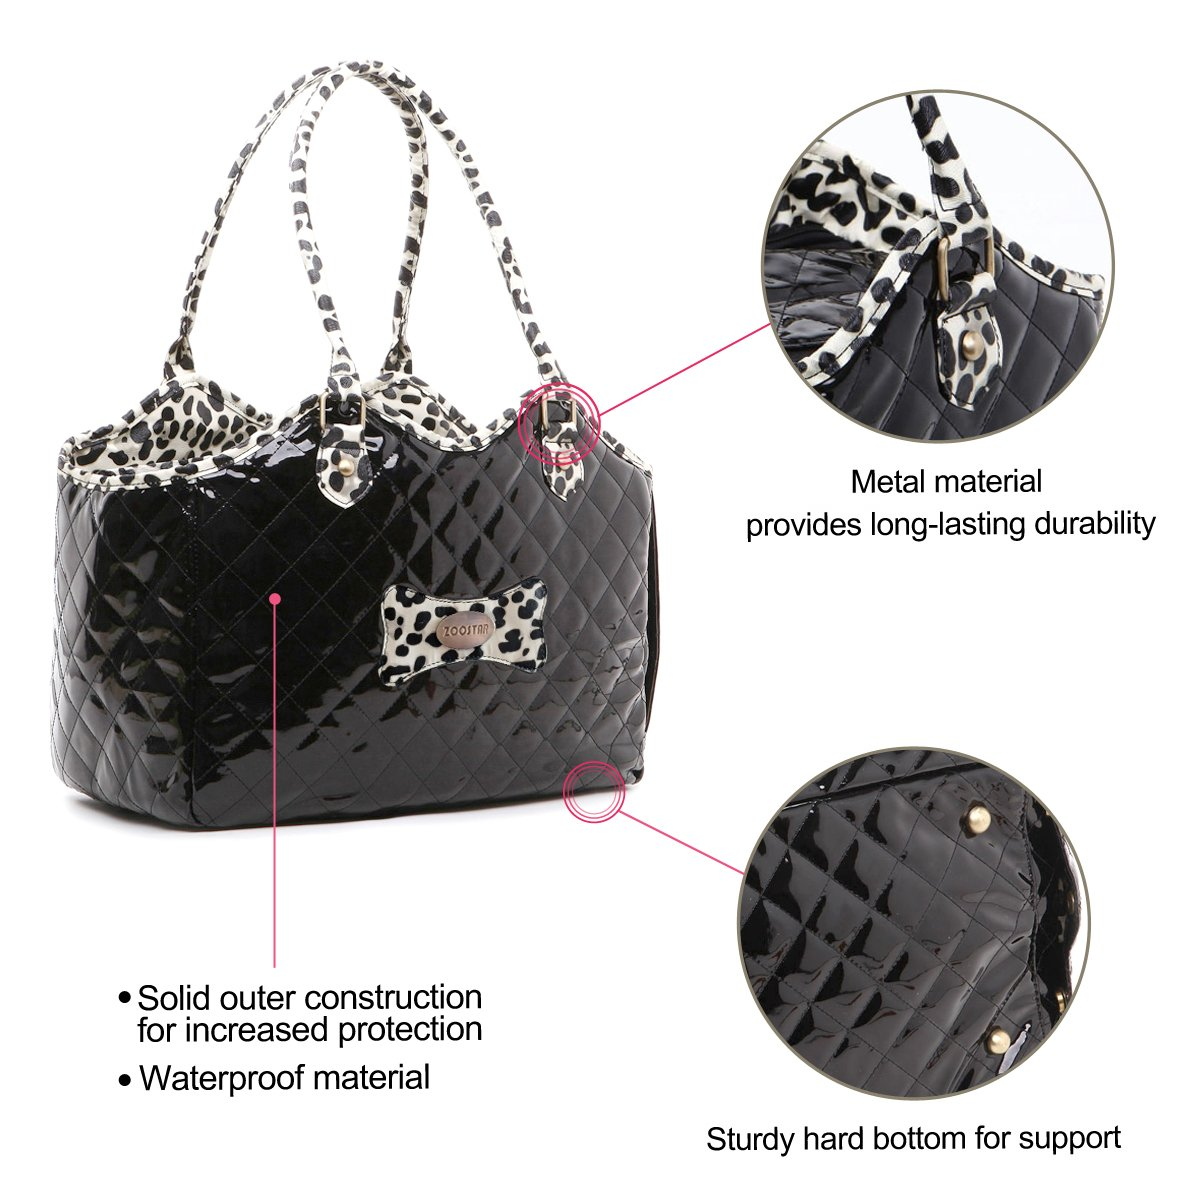 Dog Carrier Purse Pet Travel Bag Cat Portable Handbag,Soft Sided Tote with 2 Fleece Pads for Small Pets,Come with a Pet Comb,Up to 15lbs,Easy to Storage,Go Hiking Shopping with Your Doggy (black) by ZOOSTAR (Image #8)